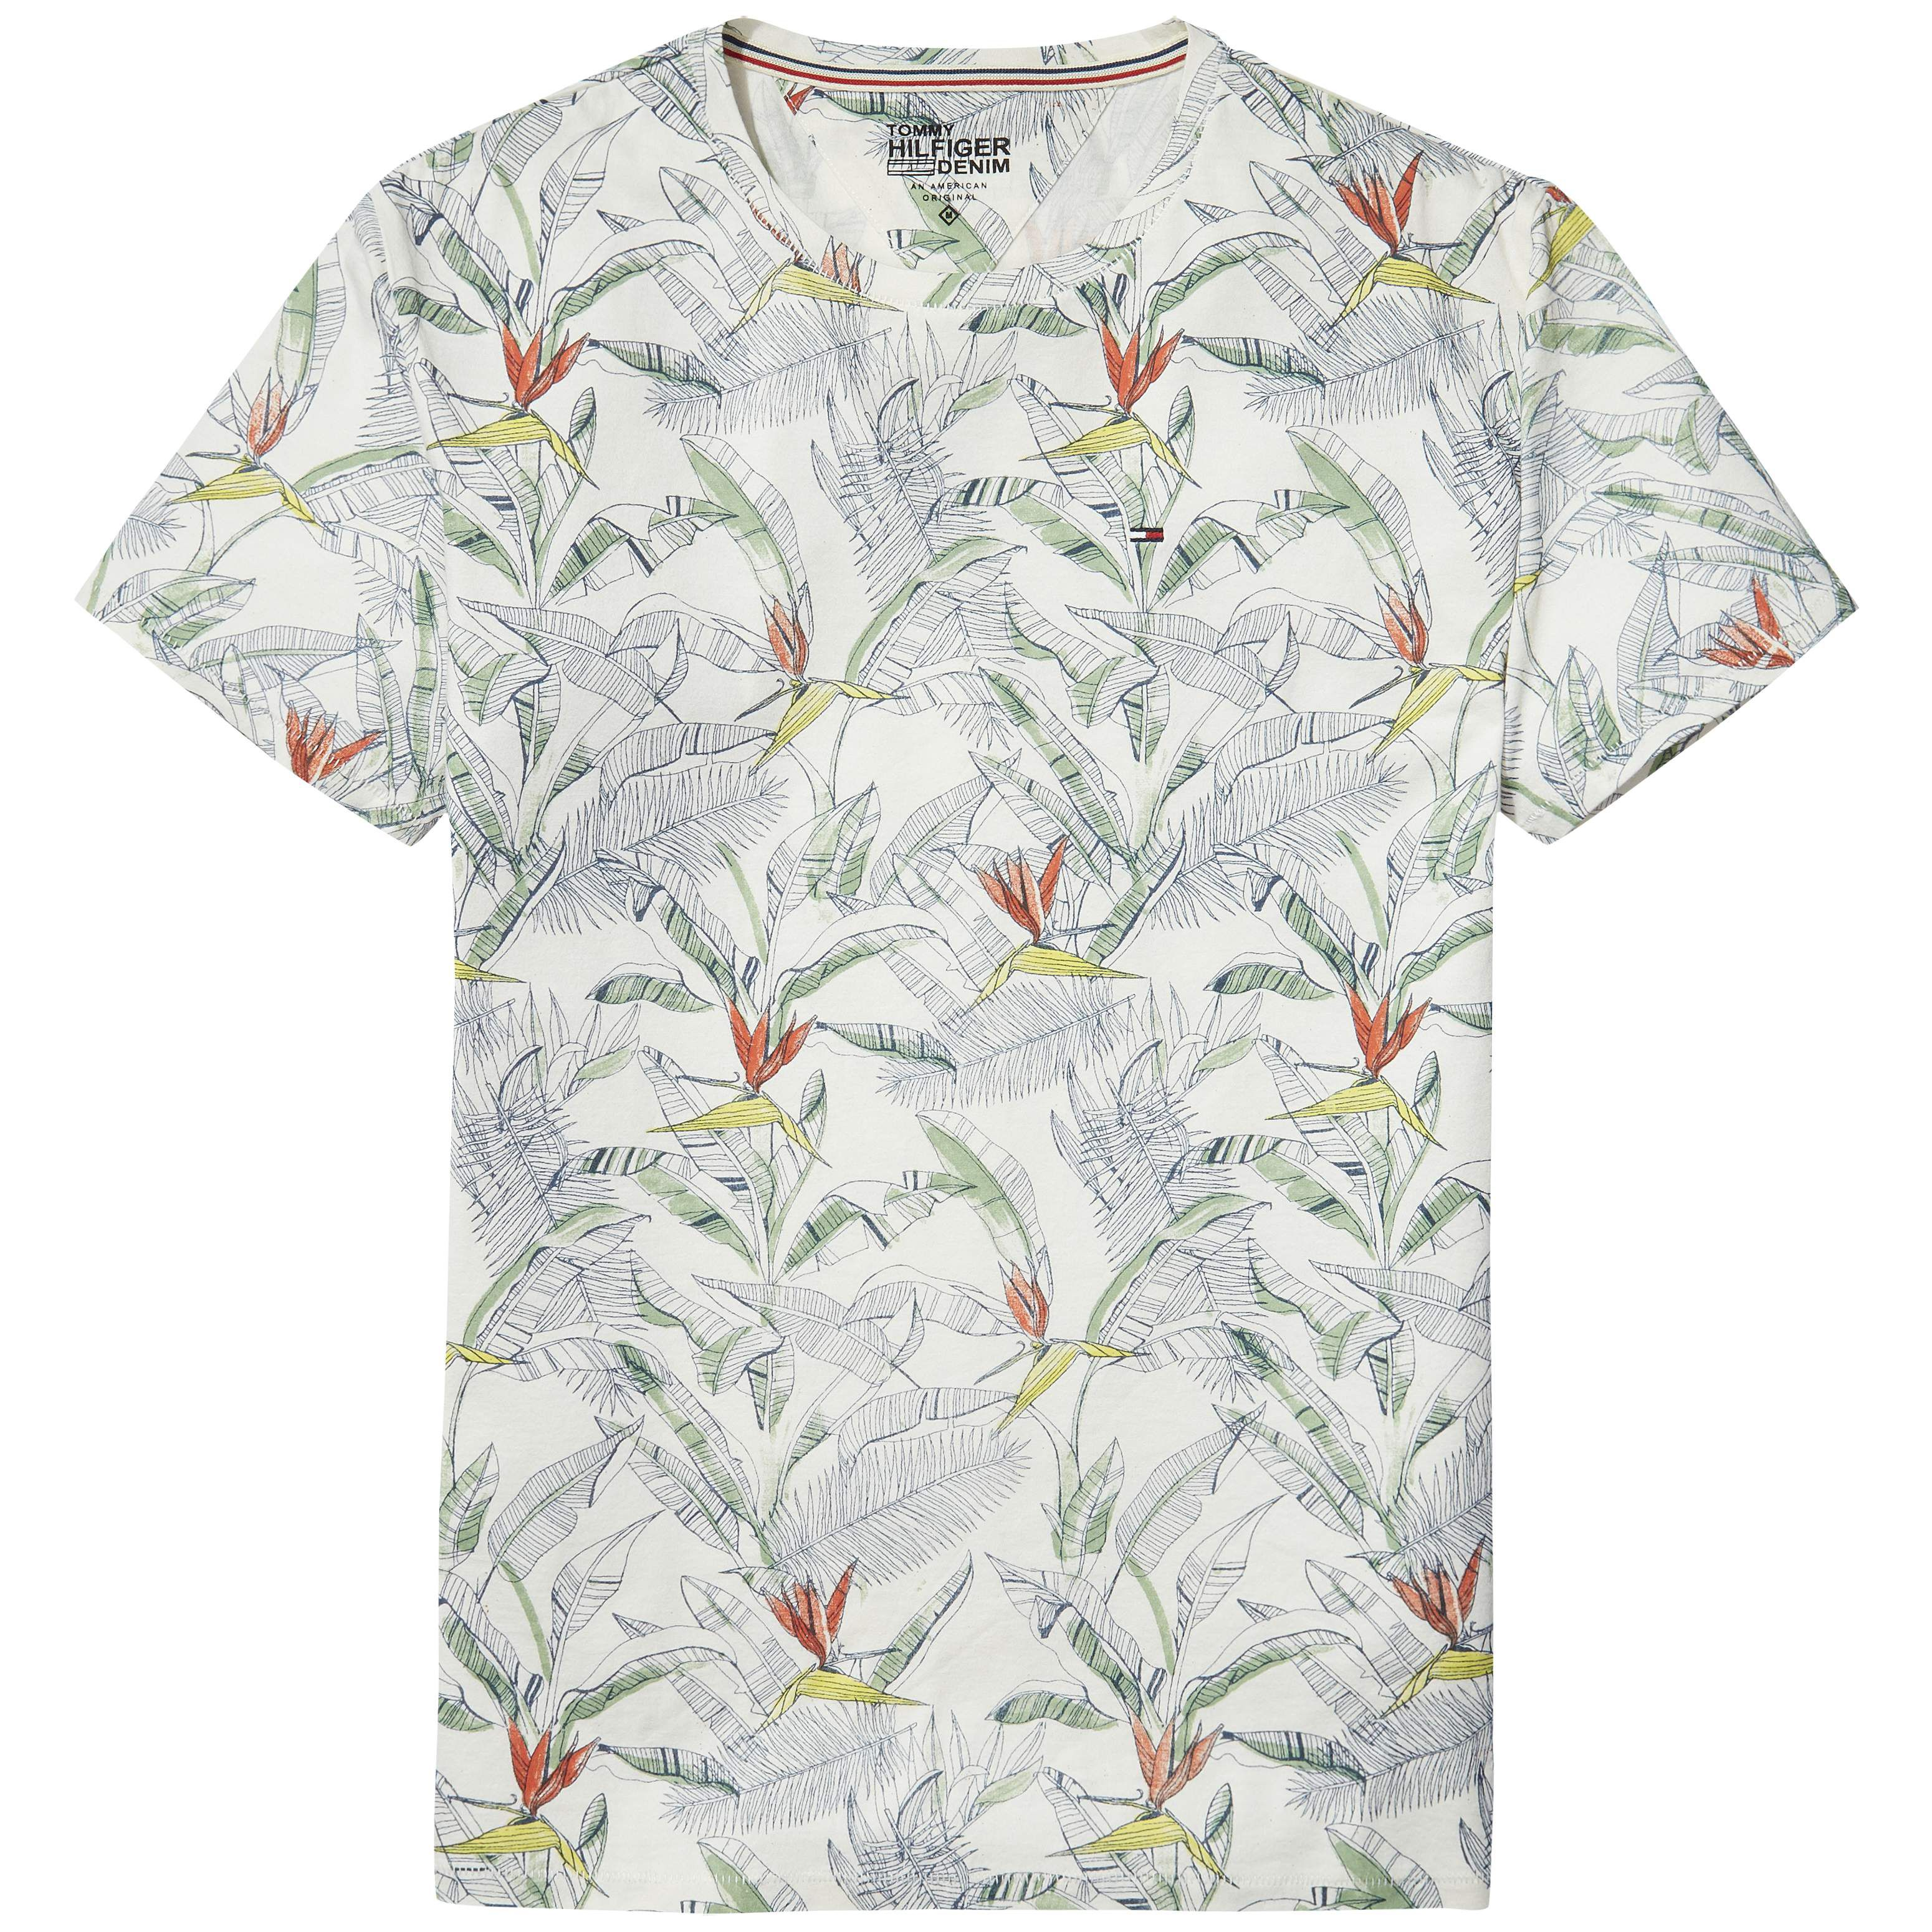 Men's Tommy Hilfiger Hilfiger Denim Floral Print T-Shirt, White